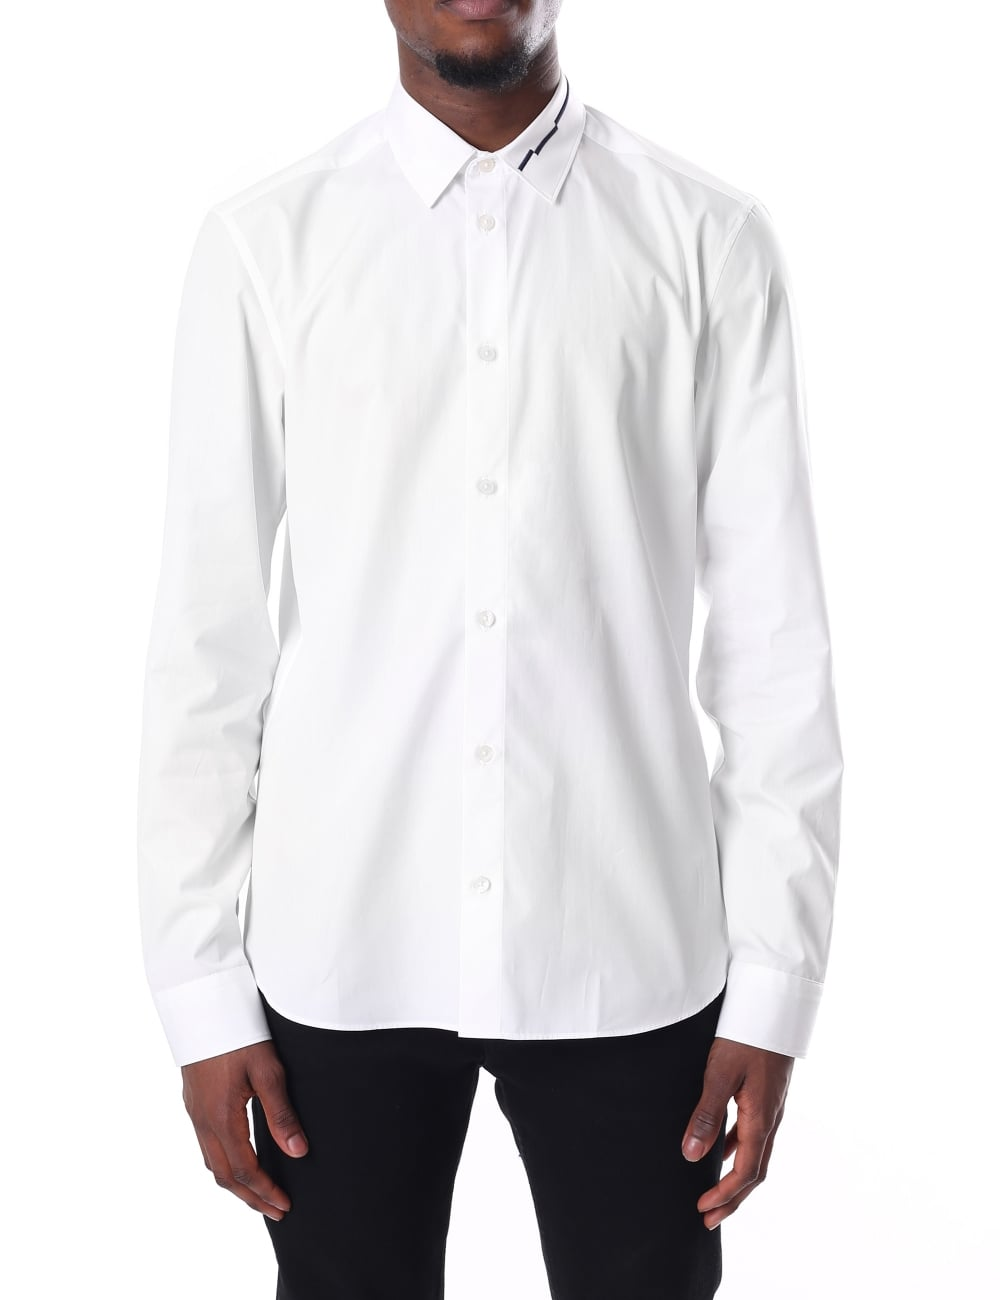 Men's Long Sleeve Embroidered Collar Slim Fit Shirt